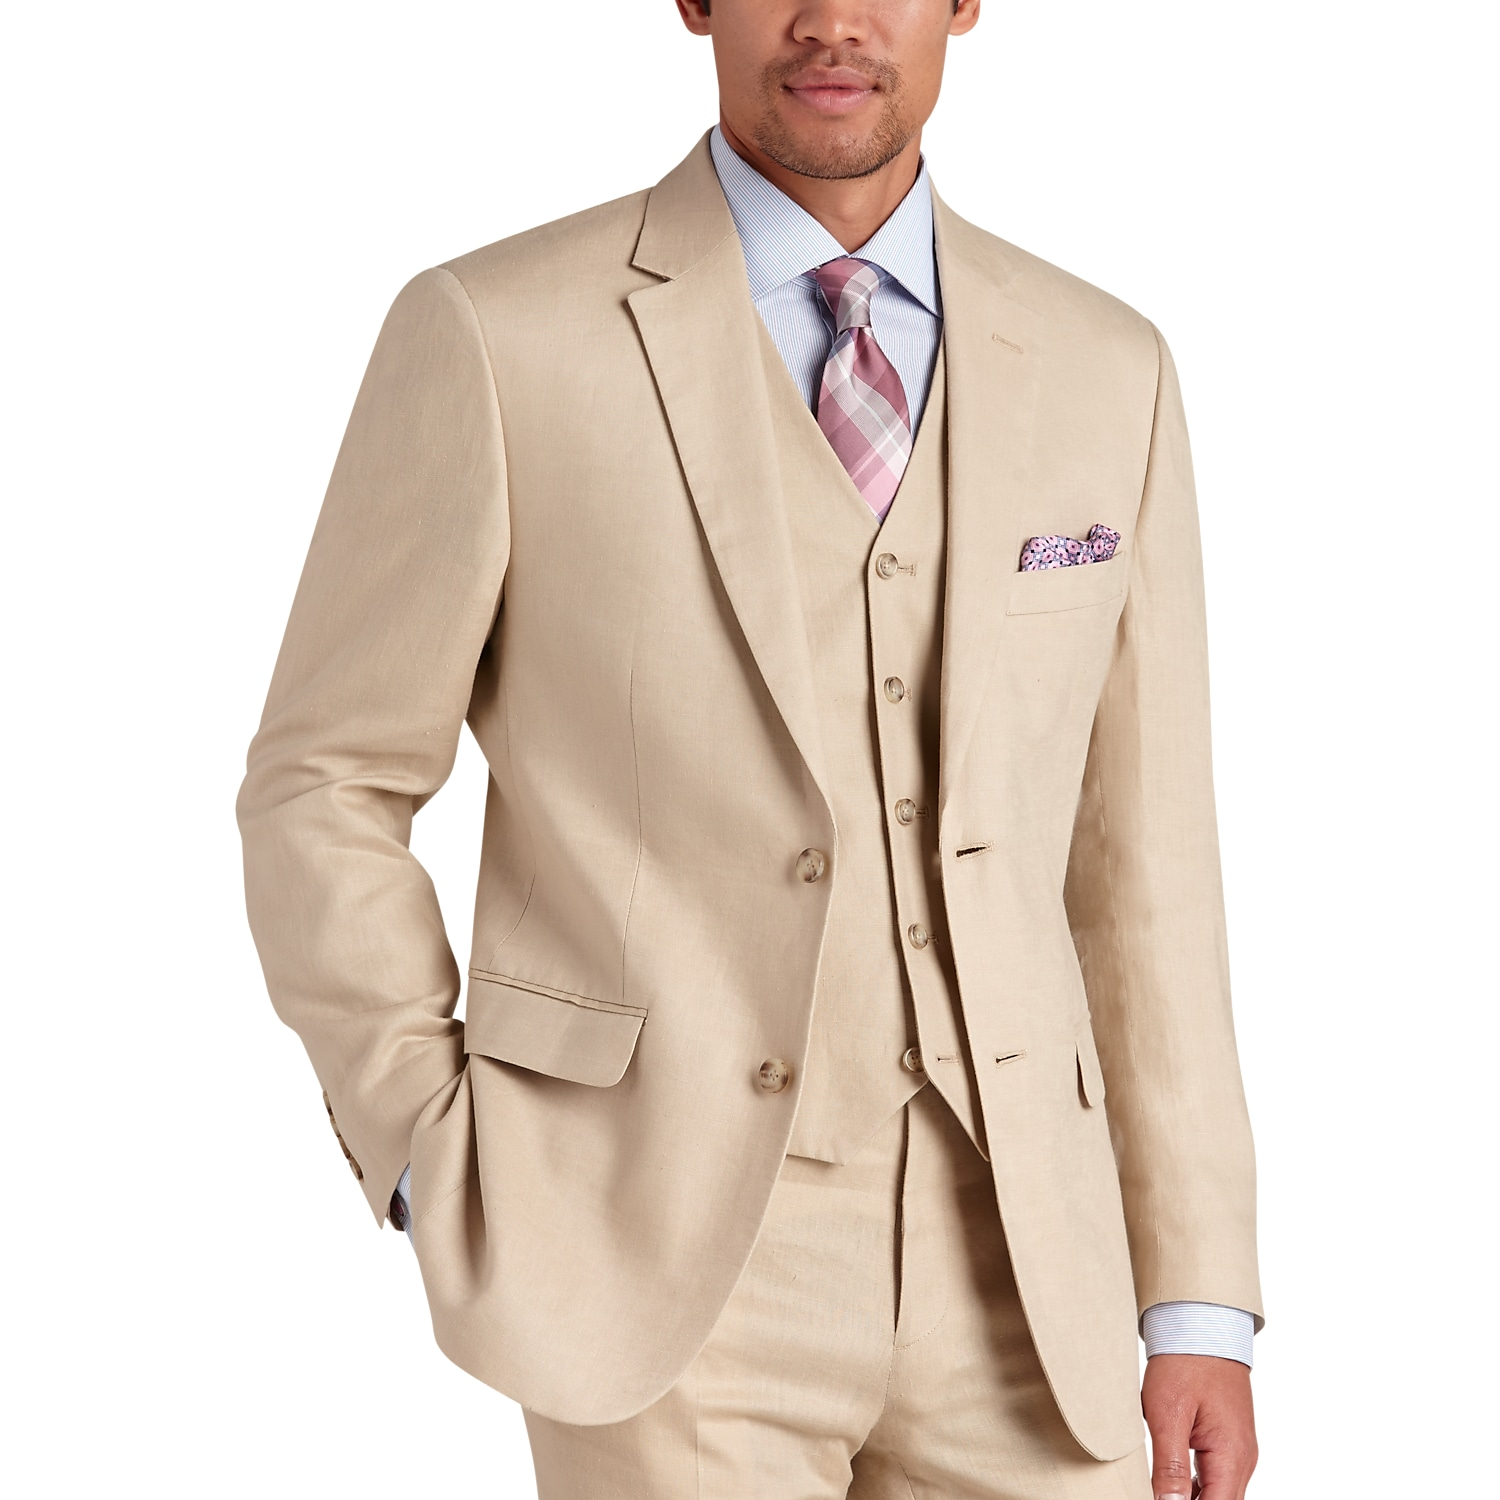 Shop for men's suits online at rutor-org.ga Browse the latest business & designer suit collections & styles for men. Free Shipping Available!